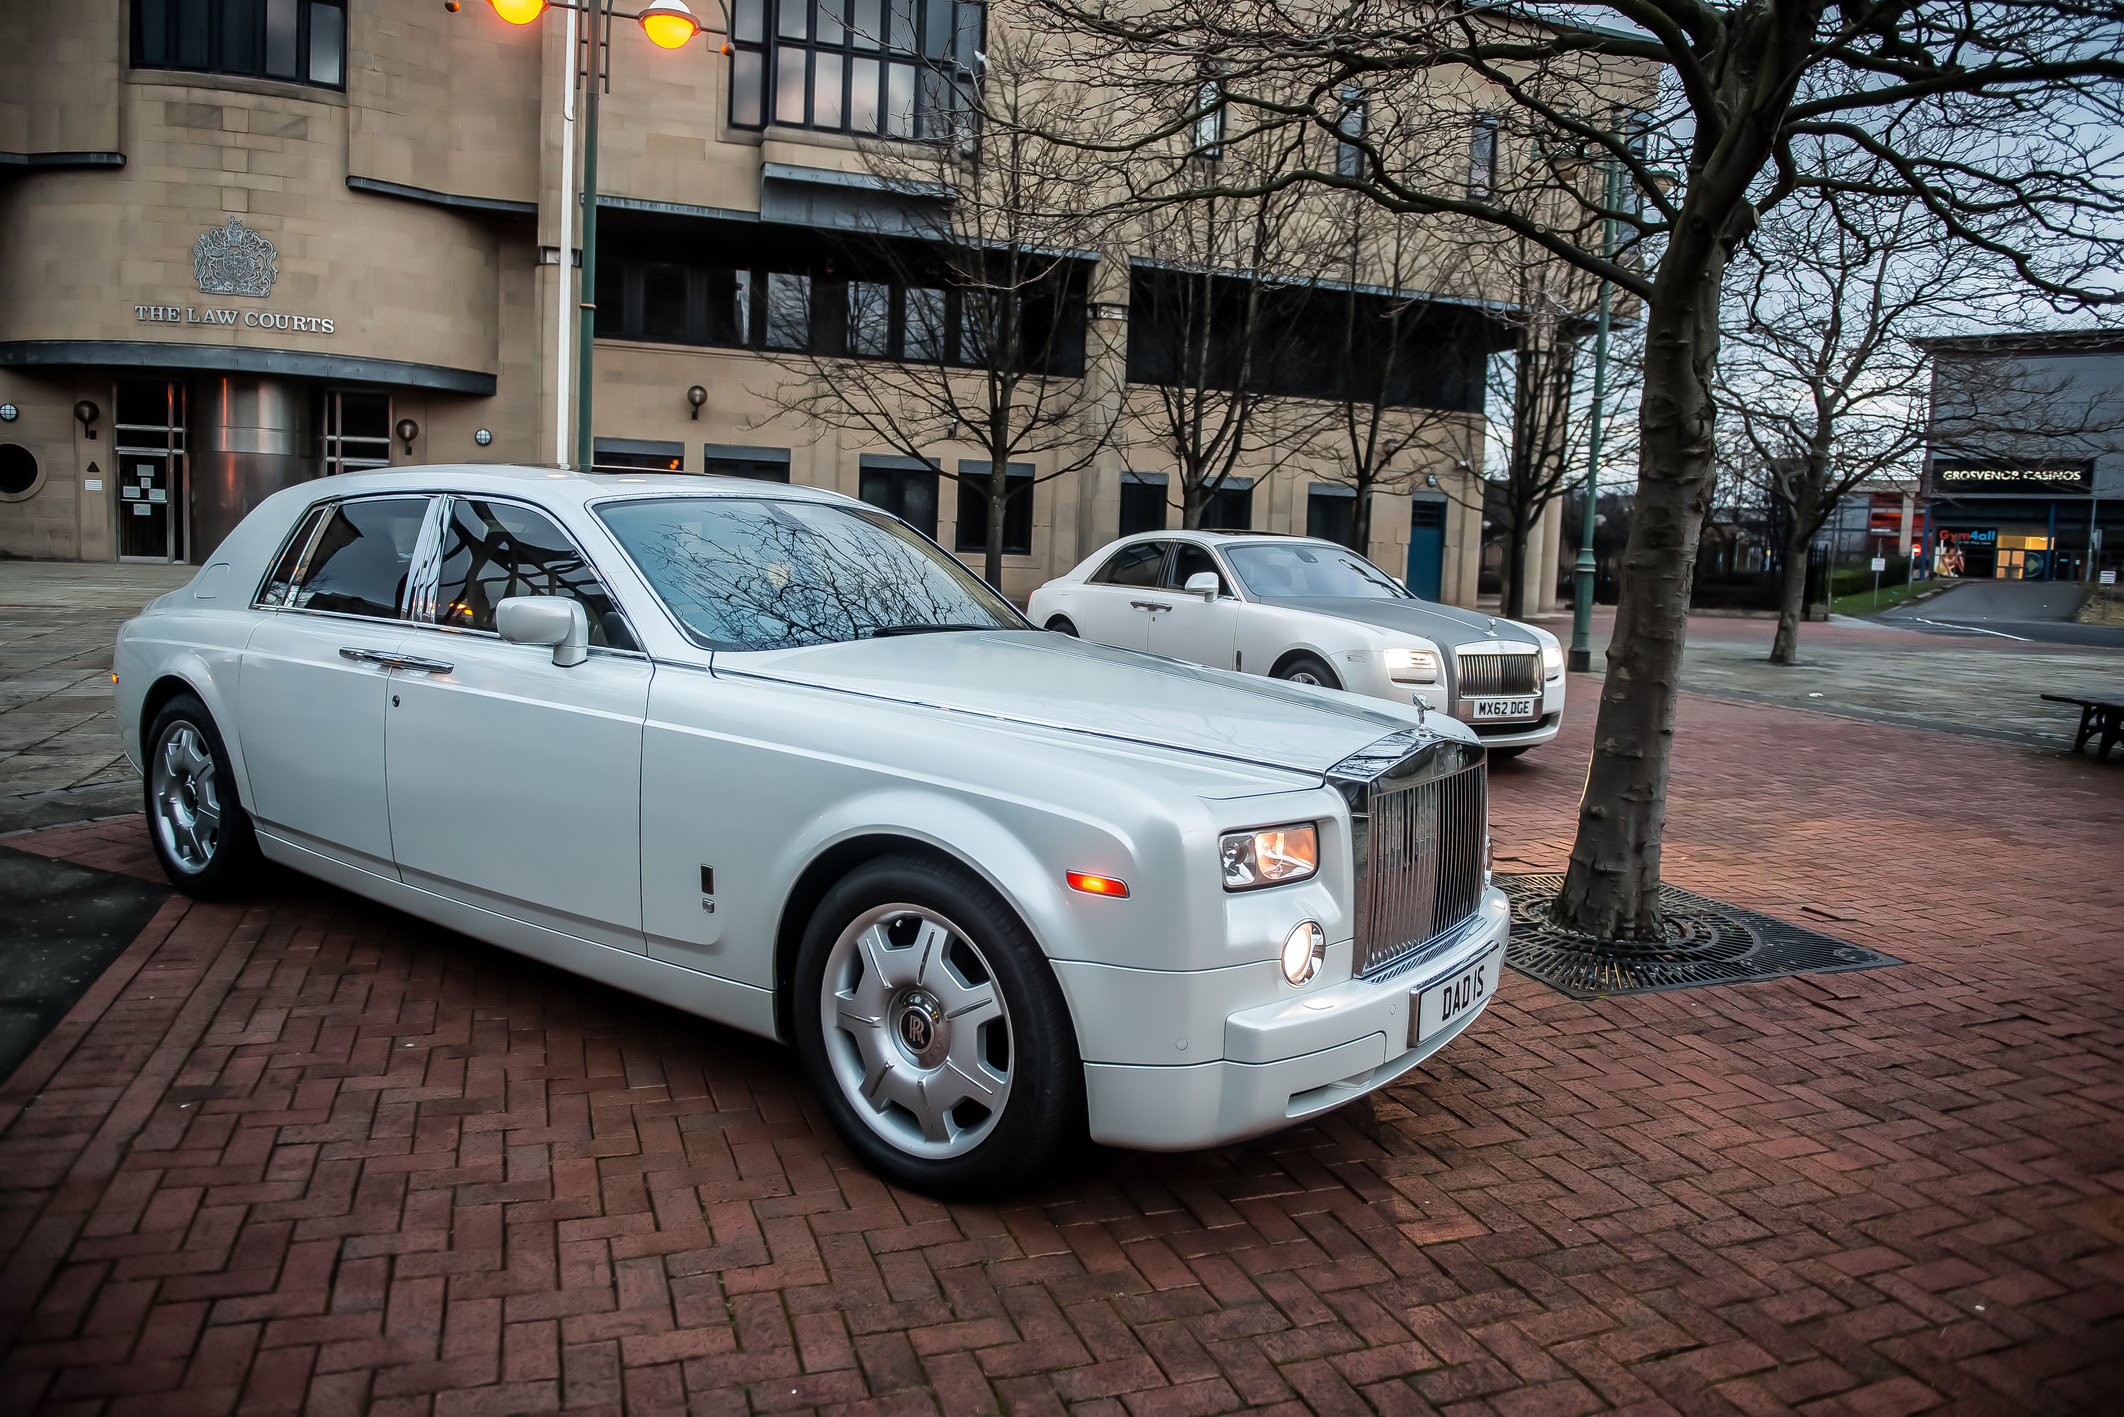 Platinum Rolls Royce Phantom Hire Halifax